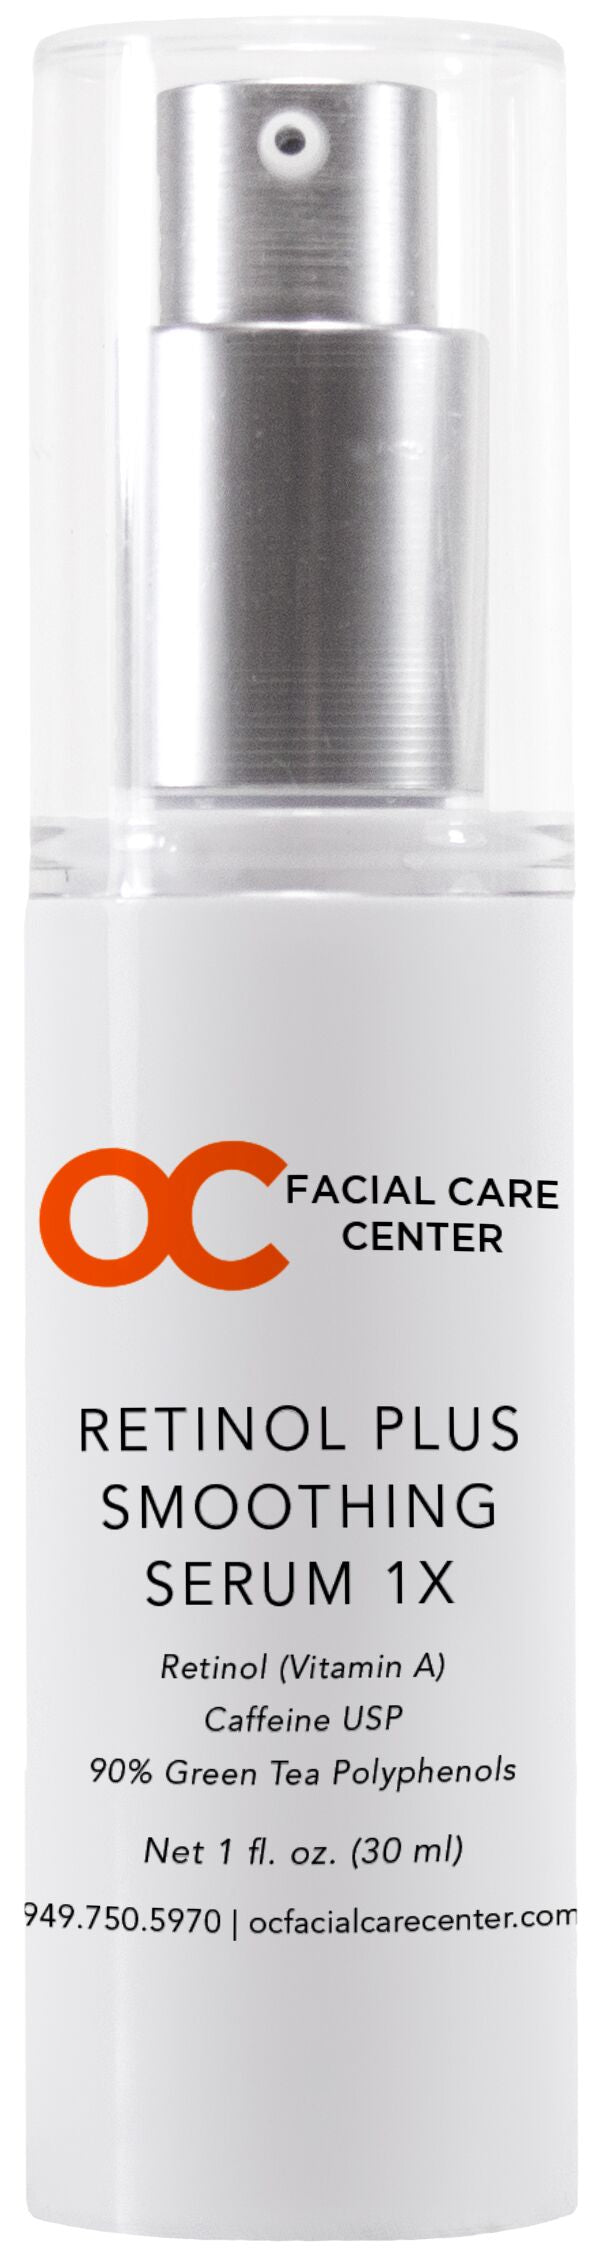 OC Facial Care Center Retinol Plus Smoothing Serum 3X